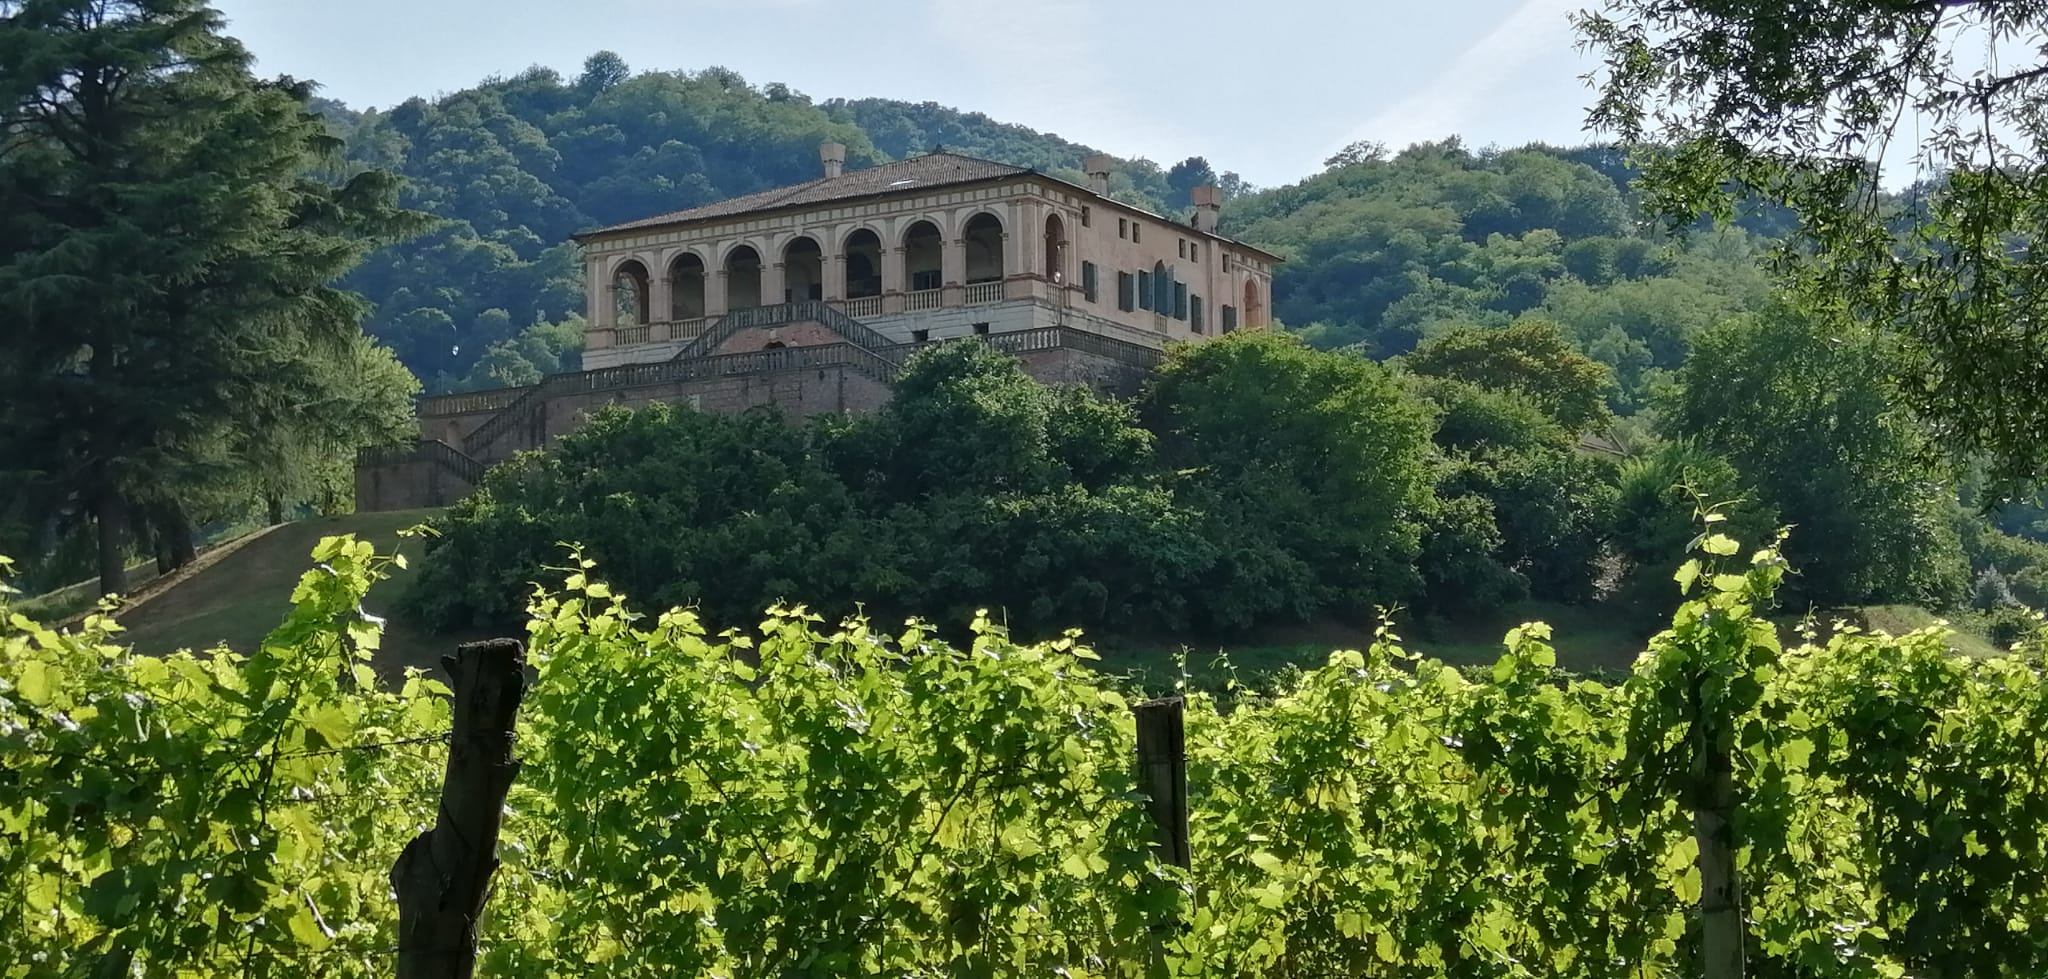 Villa dei Vescovi: The Renaissance on the Euganean Hills